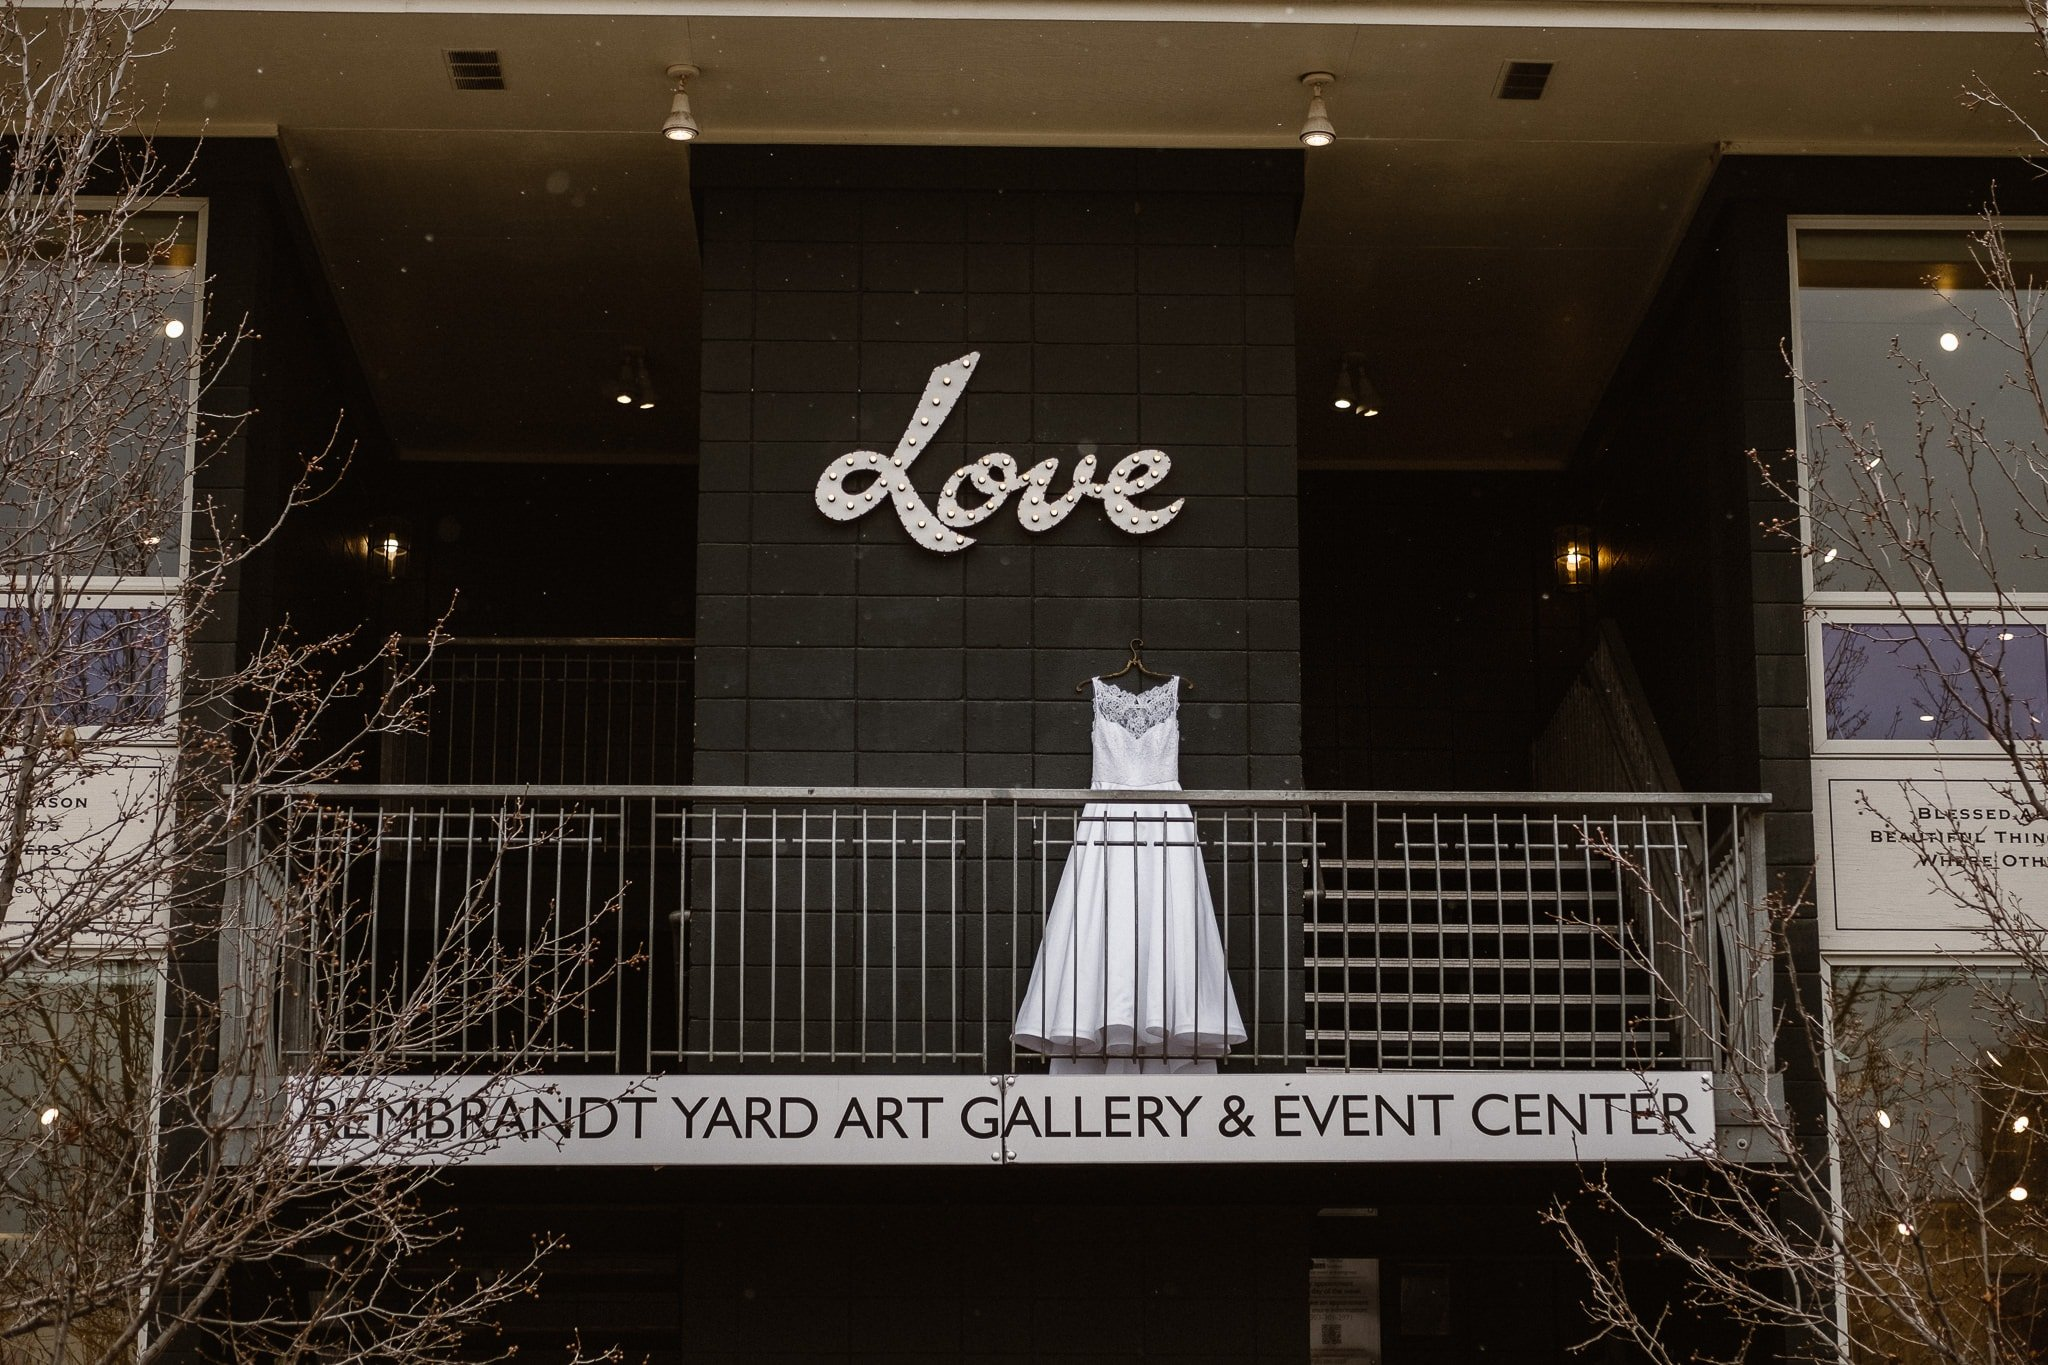 Rembrandt Yard wedding photographer, Boulder wedding photographer, Colorado Jewish wedding, wedding dress hanging under Love sign